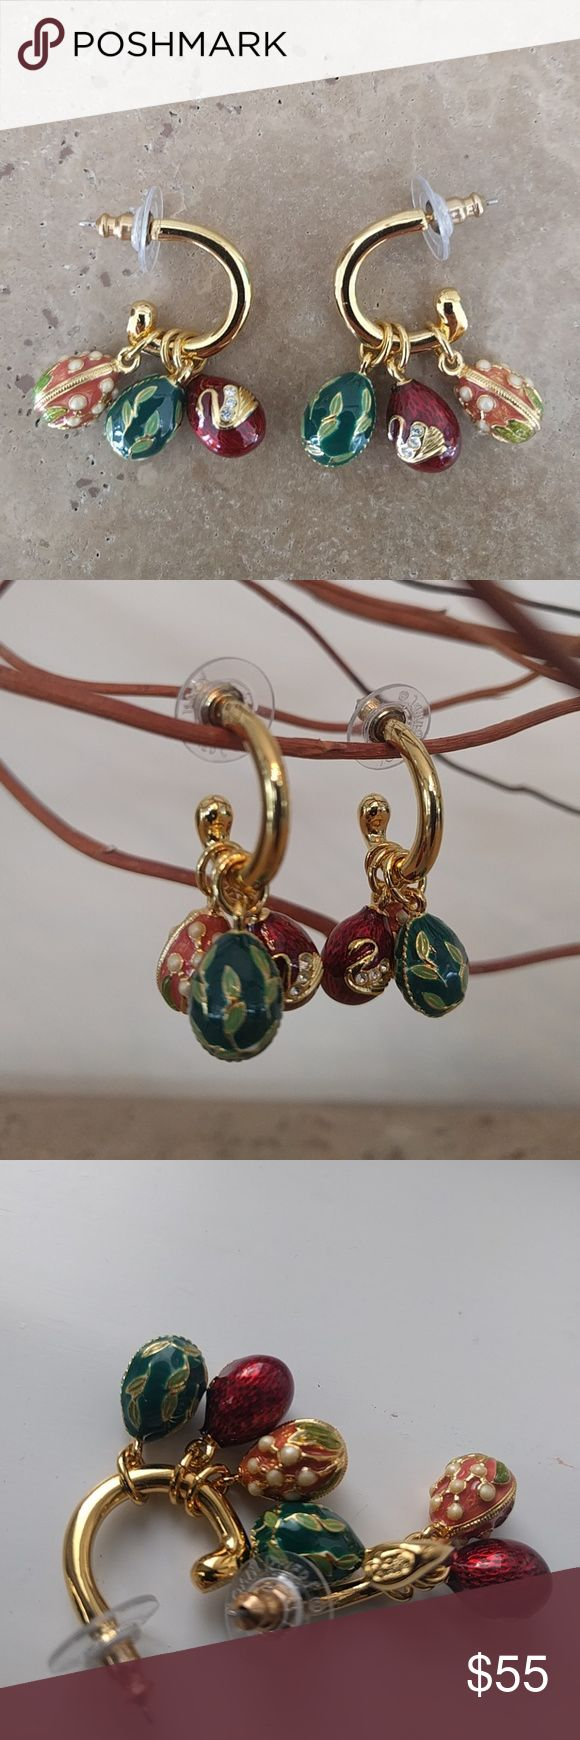 VTG Joan Rivers earrings Pair Vintage signature Joan Rivers Faberge styled egg hoop earrings, each with 3 Enamel eggs decorated in the Russian style partial with Swarovski crystals, gold dipped, new condition, no tags, great collector's item, or beautiful Easter gift Joan Rivers Jewelry Earrings